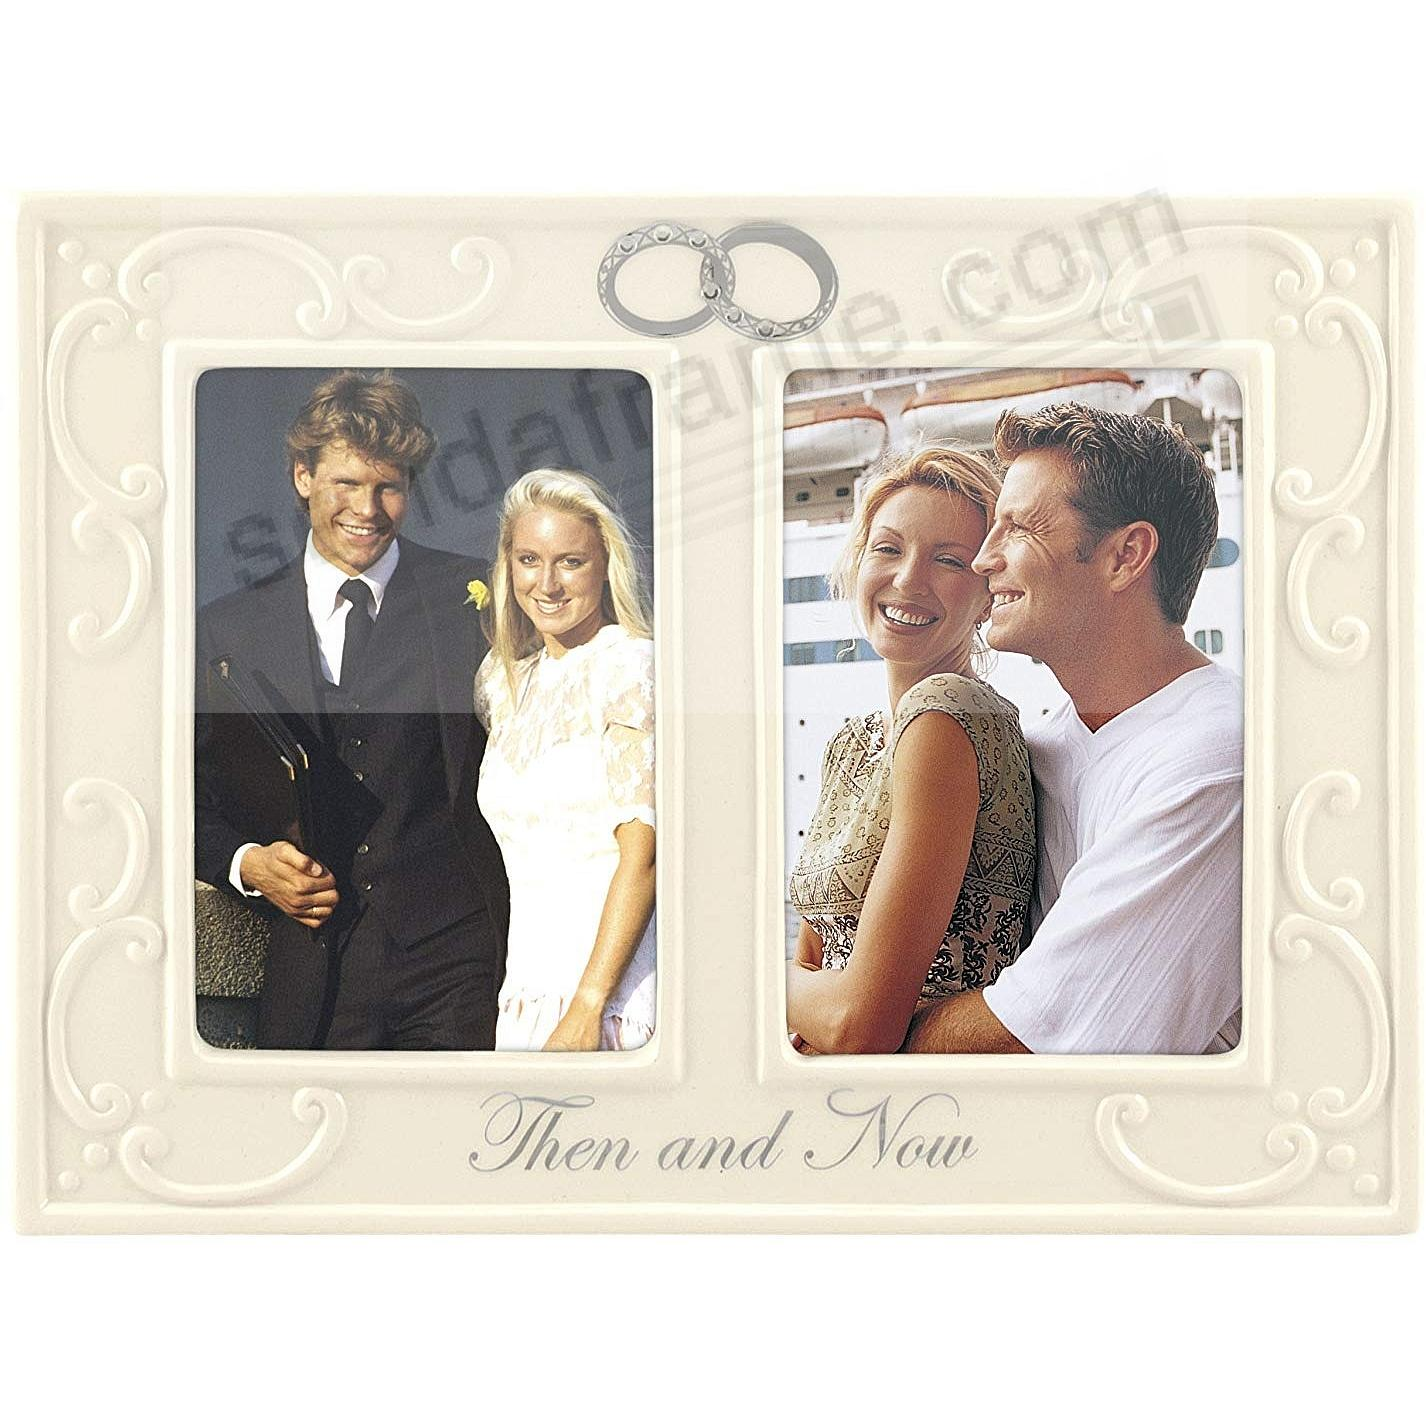 DOUBLE INTERLOCKING RINGS THEN AND NOW Anniversary frame by Malden ...